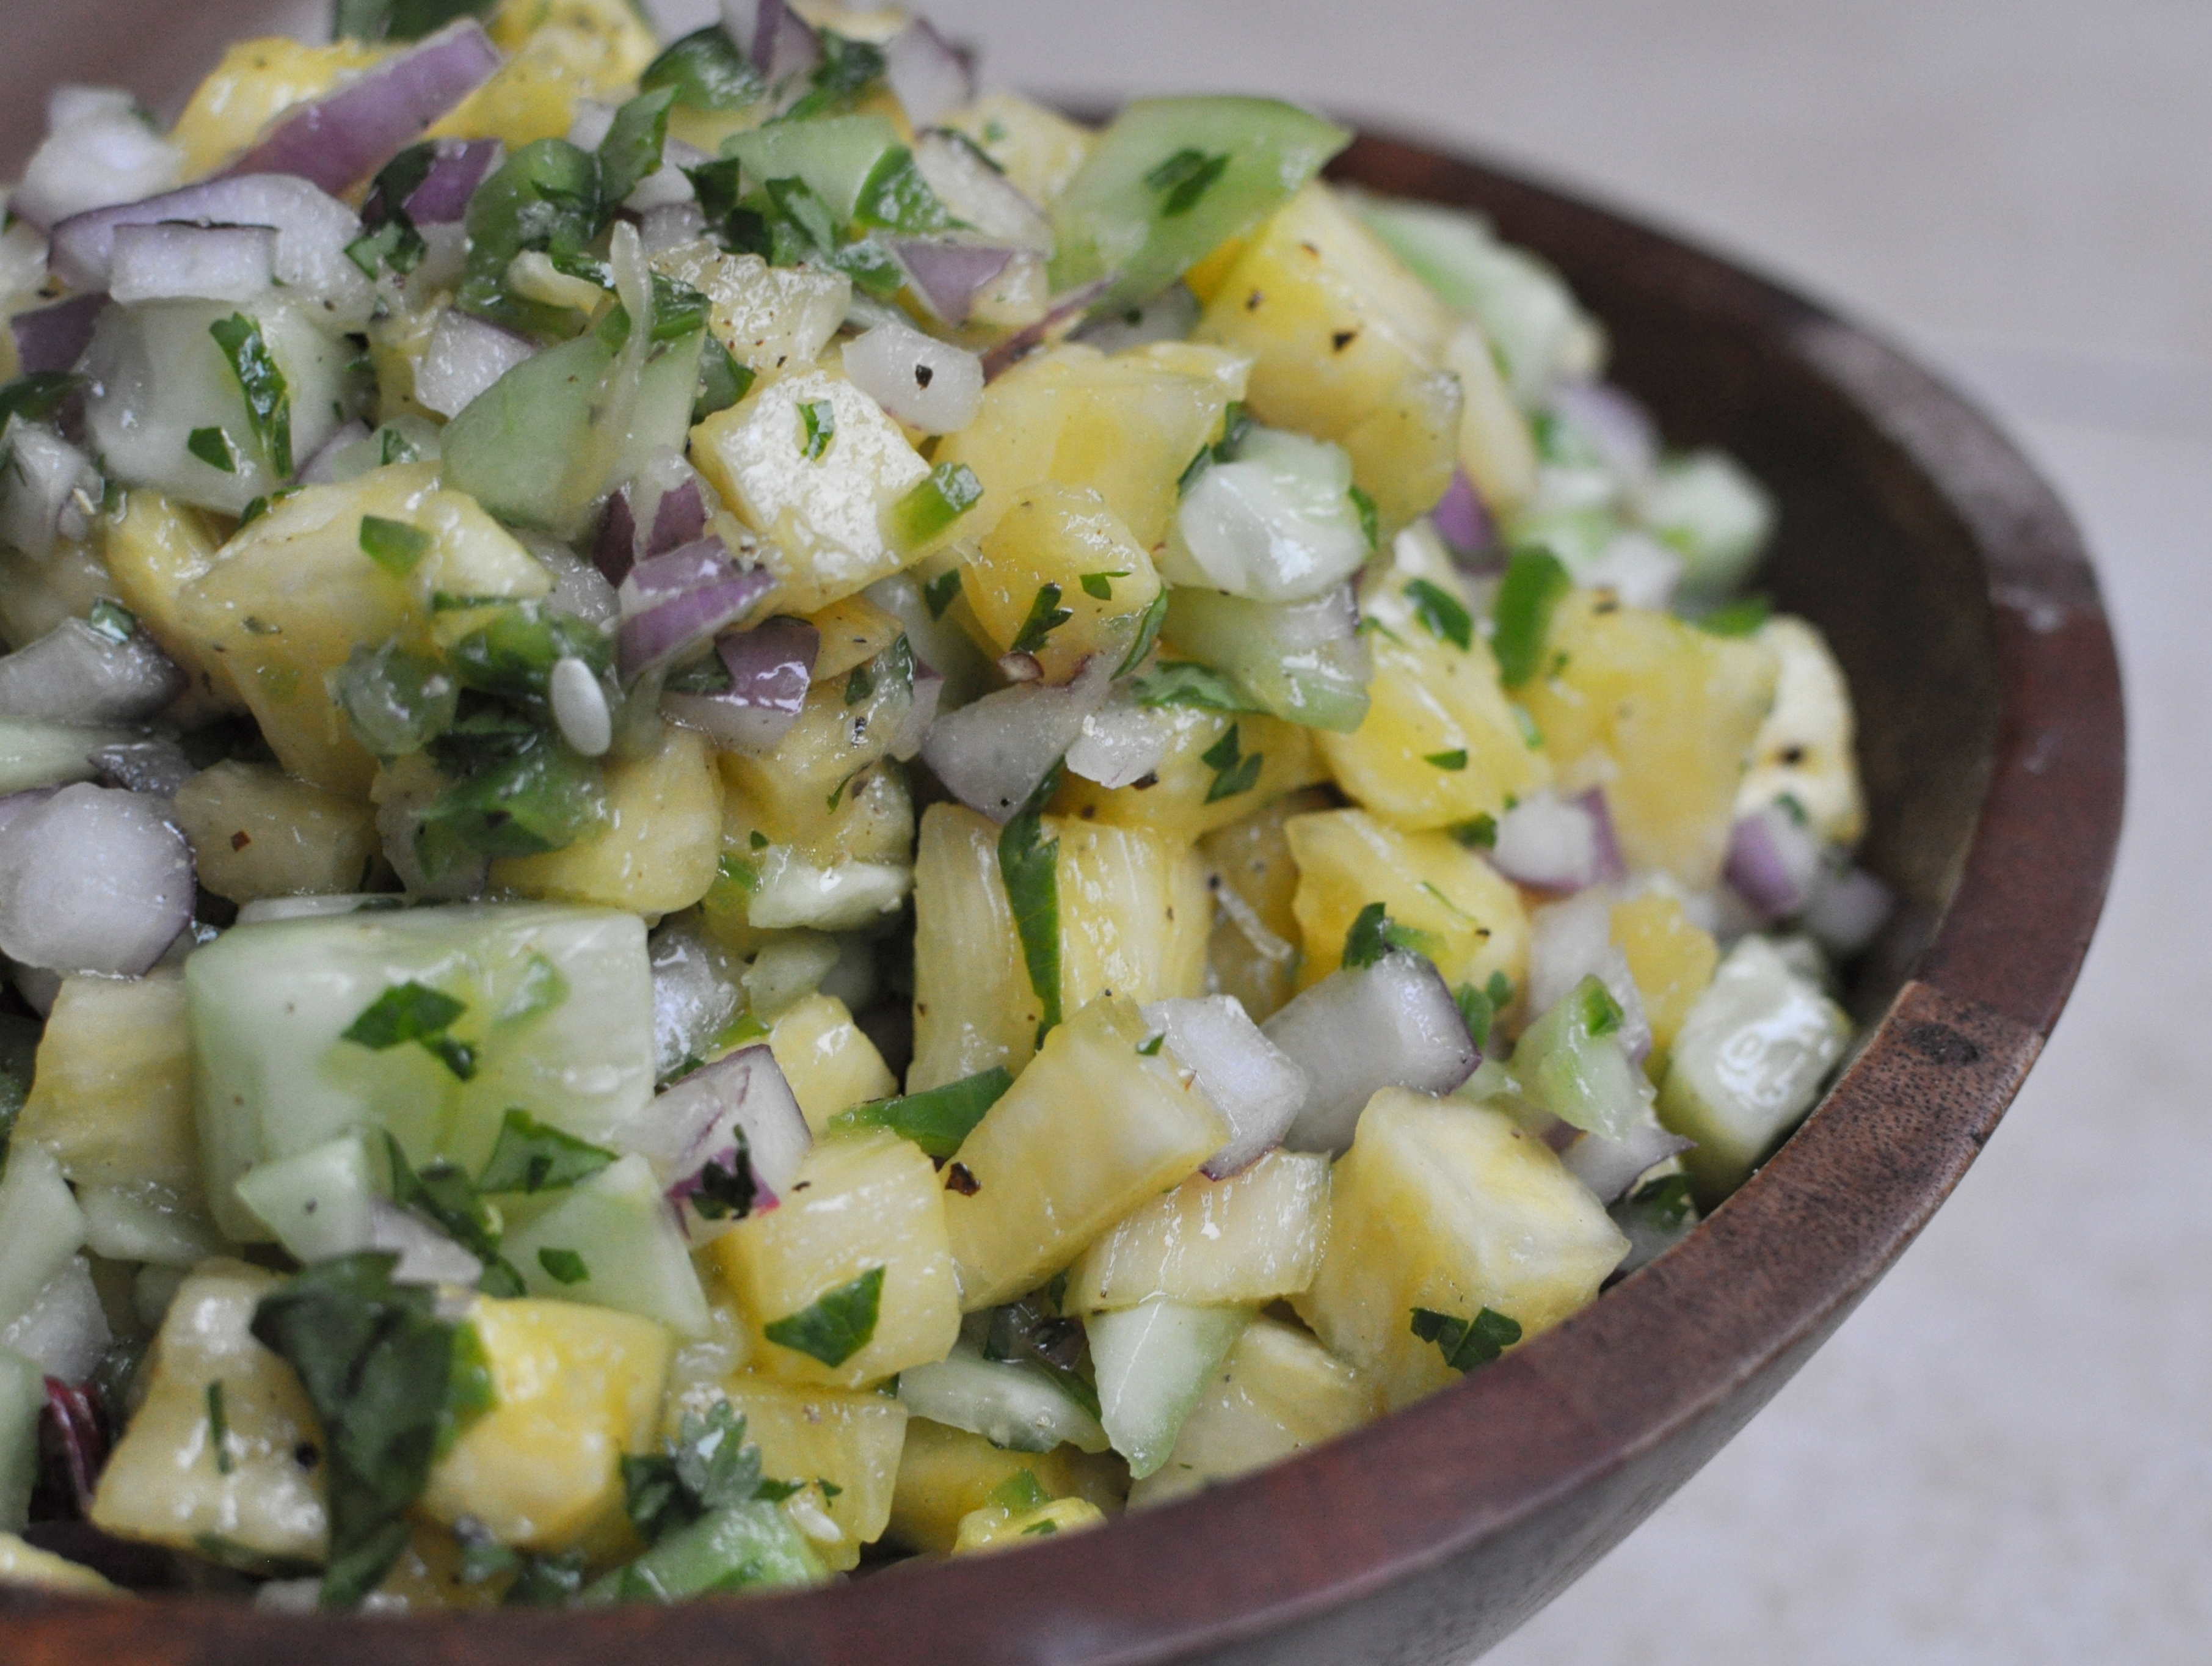 Spicy Pineapple Salsa from Michelle Tam {Nom Nom Paleo: Food for Humans Review}